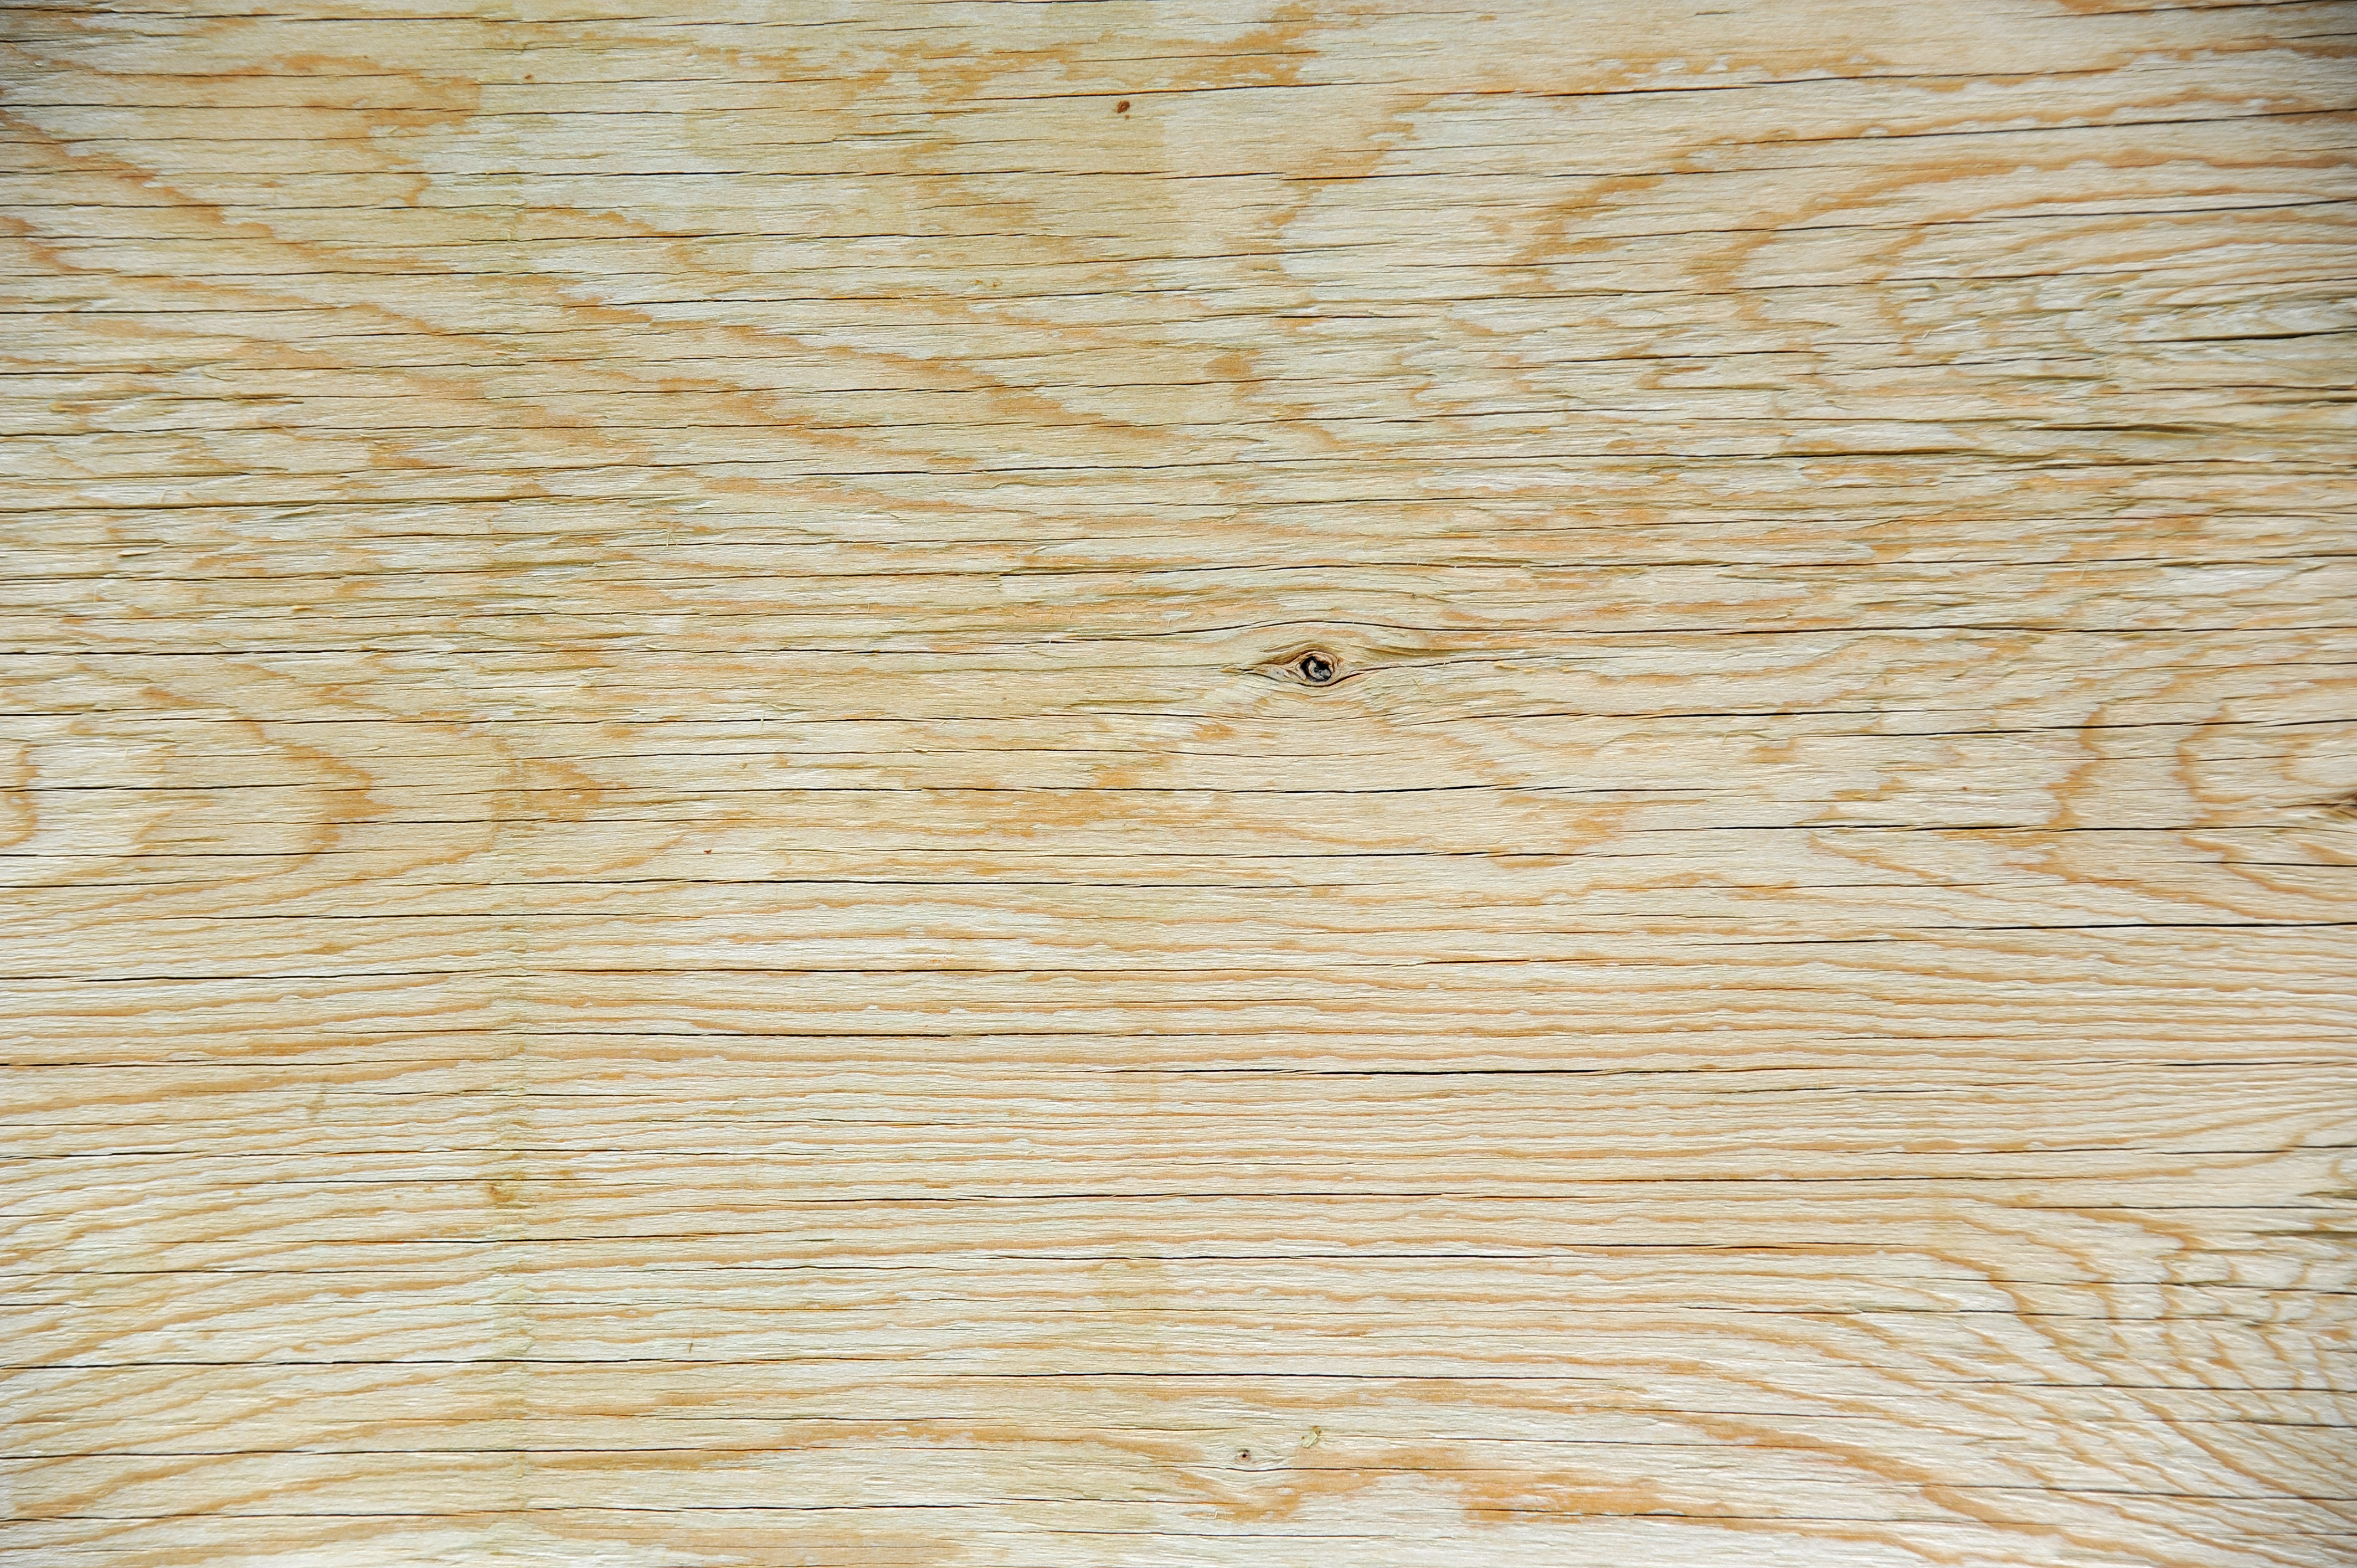 Old Plywood Sheet Texture Background Labs